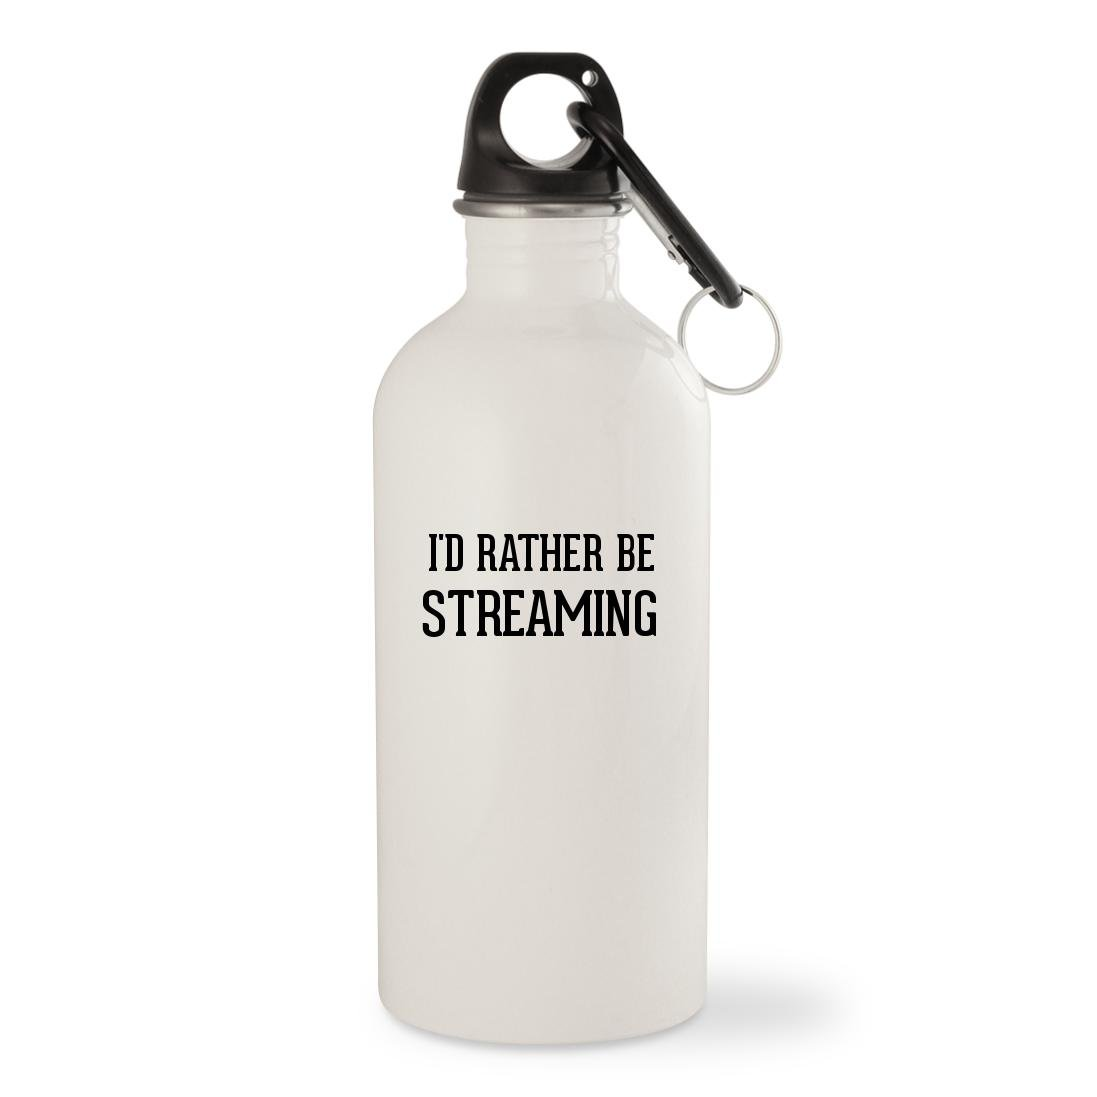 I'd Rather Be STREAMING - White 20oz Stainless Steel Water Bottle with Carabiner